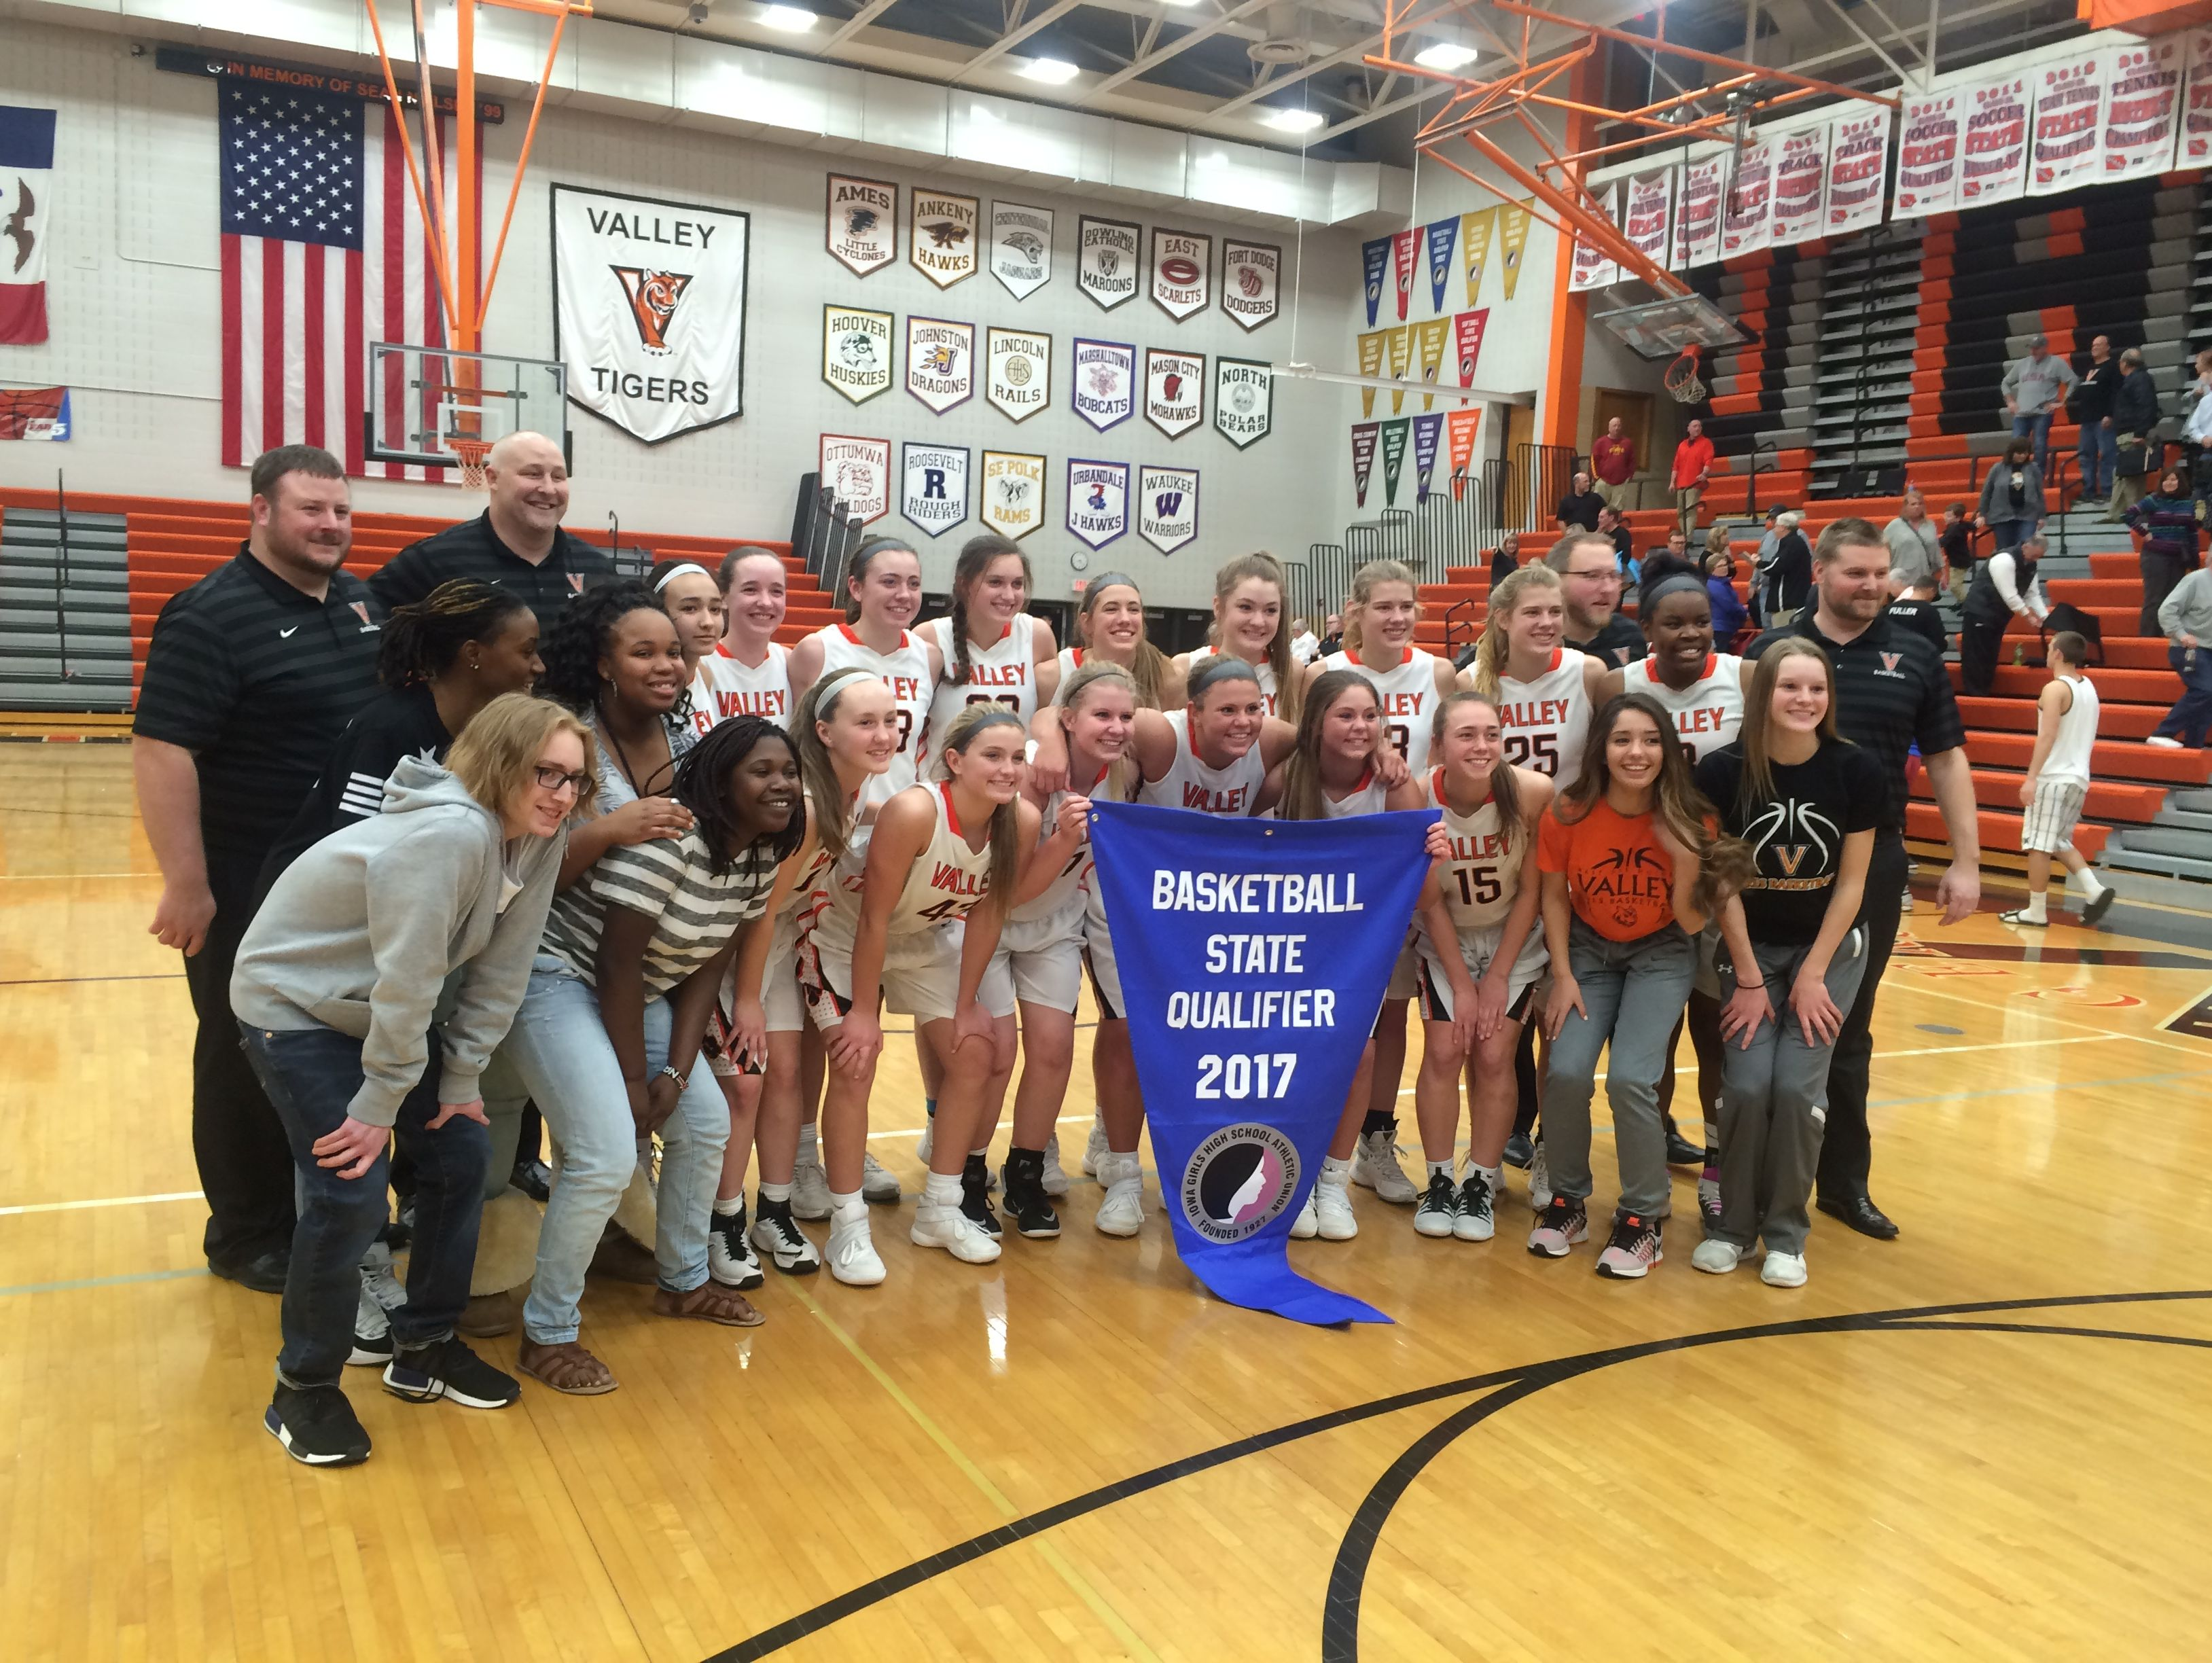 Valley's players pose with a state girls' basketball qualifier banner after beating Ames Tuesday.